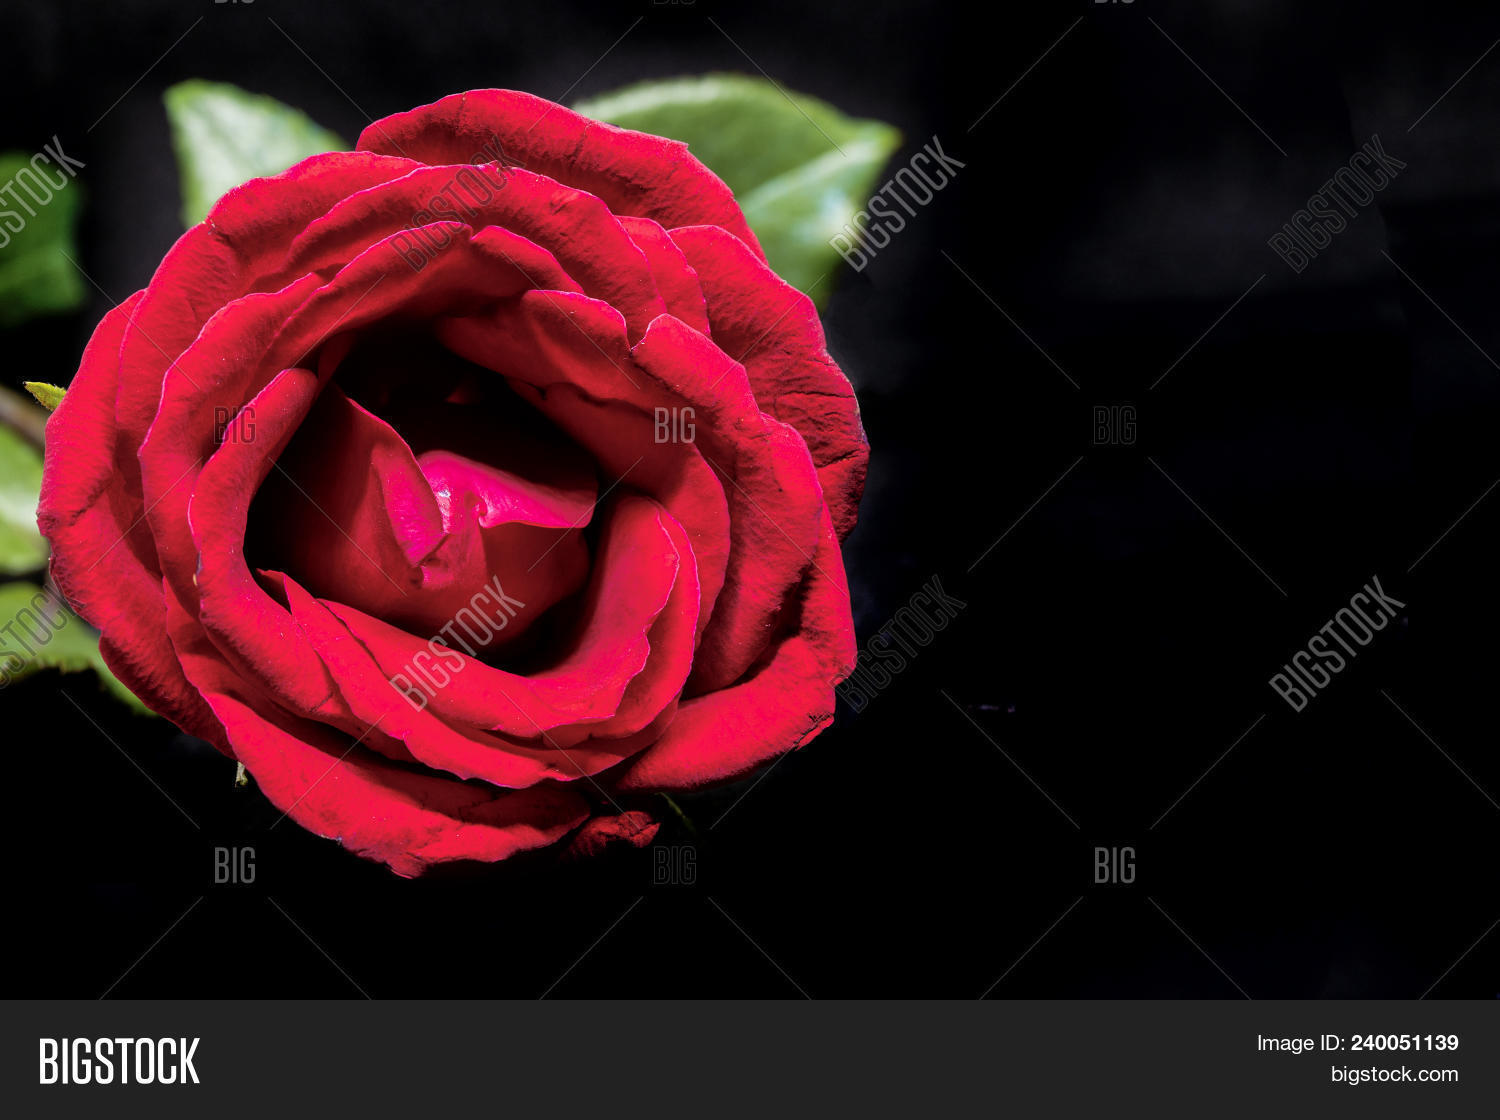 Red rose on black image photo free trial bigstock red rose on black background beautiful blossom with velvet petal hot pink flower banner izmirmasajfo